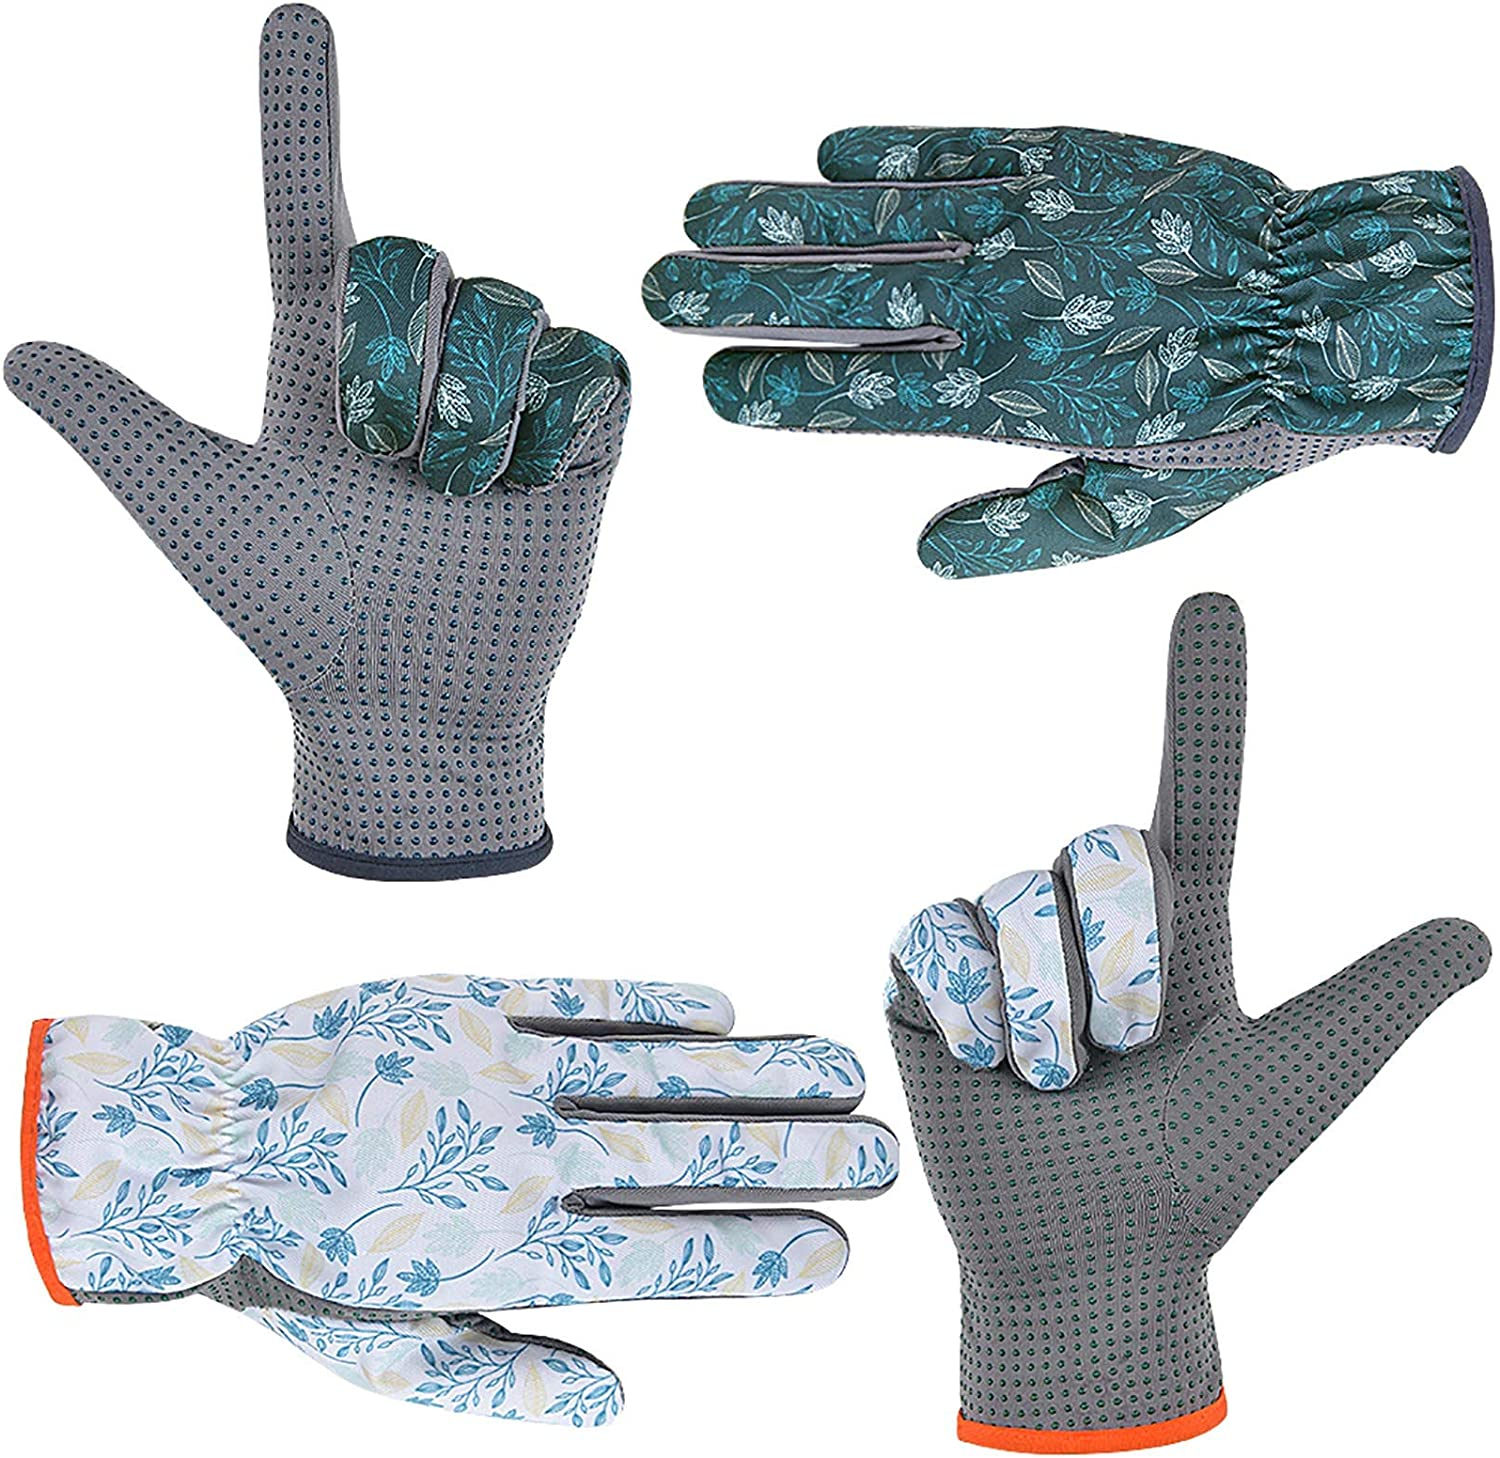 SEUROINT Gardening Gloves for Men and Women, Garden Work Gloves with PVC Dots, 2 Pairs Lightweight Breathable Polyester Gloves, Dark blue & White, Medium Size